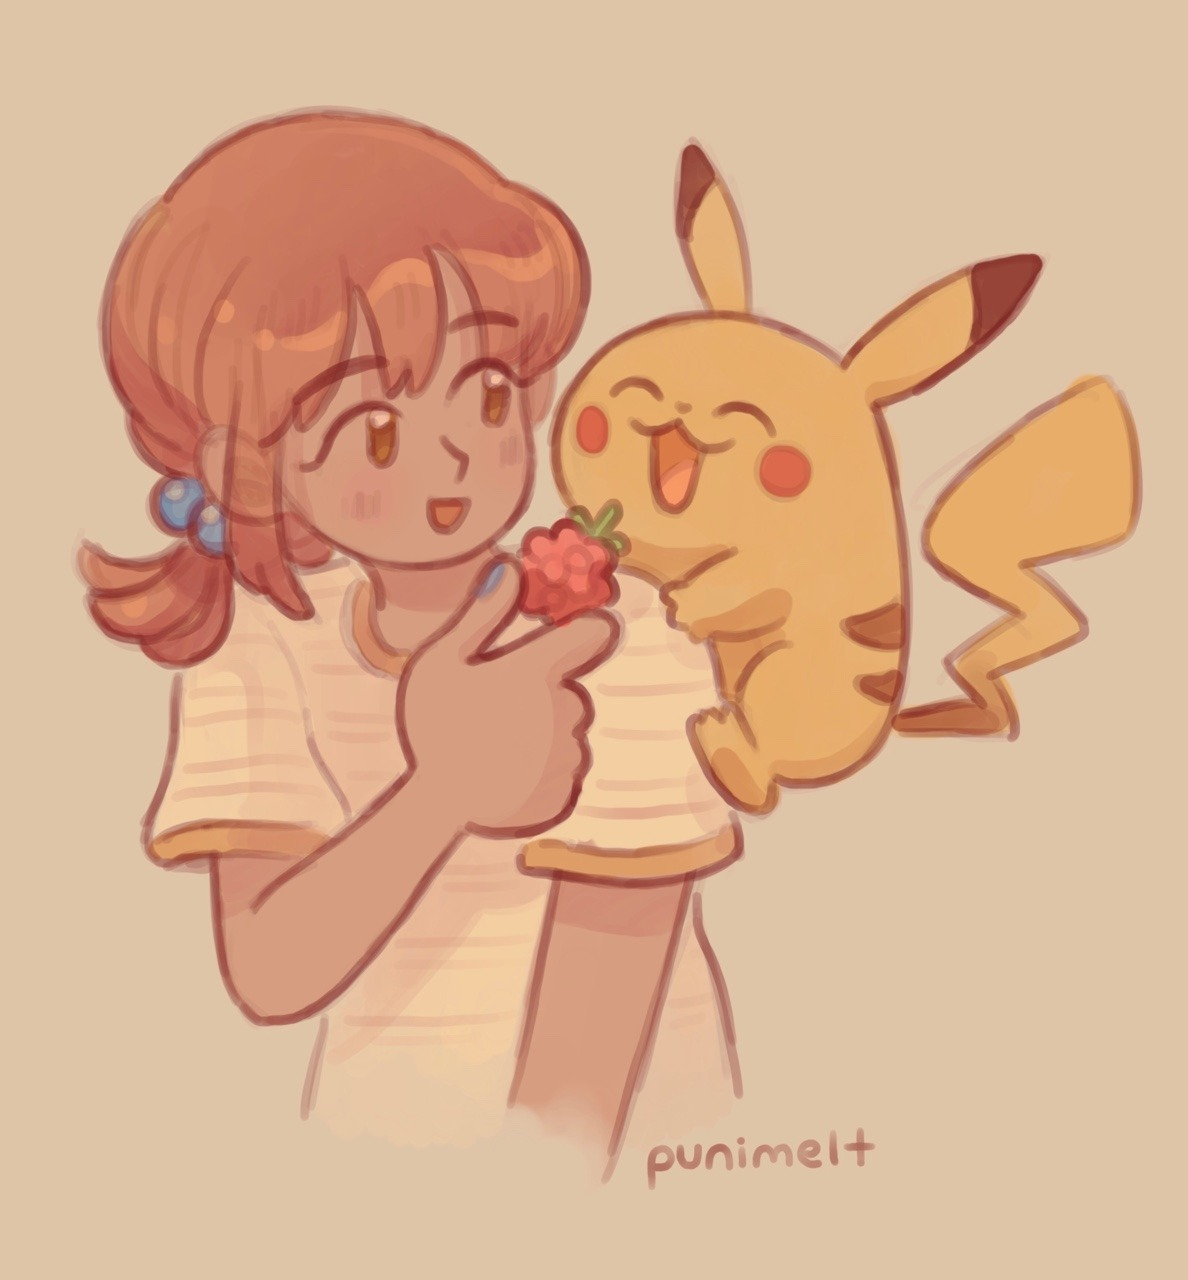 Posted by punimelt